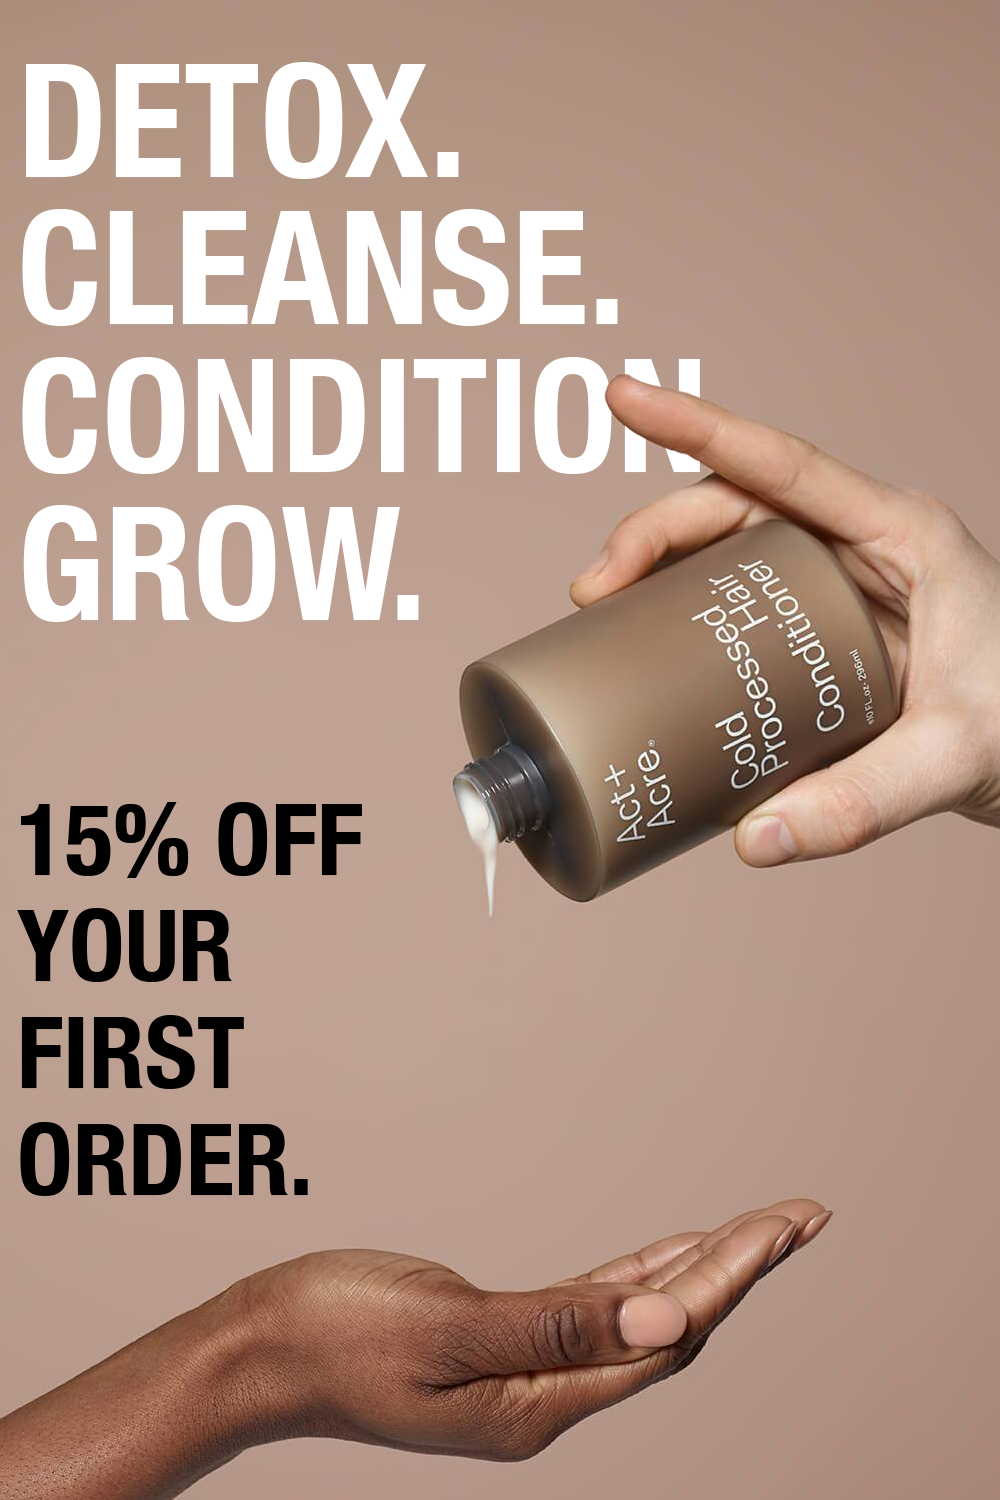 Time to Detox, Cleanse, Condition and grow your hair. Act